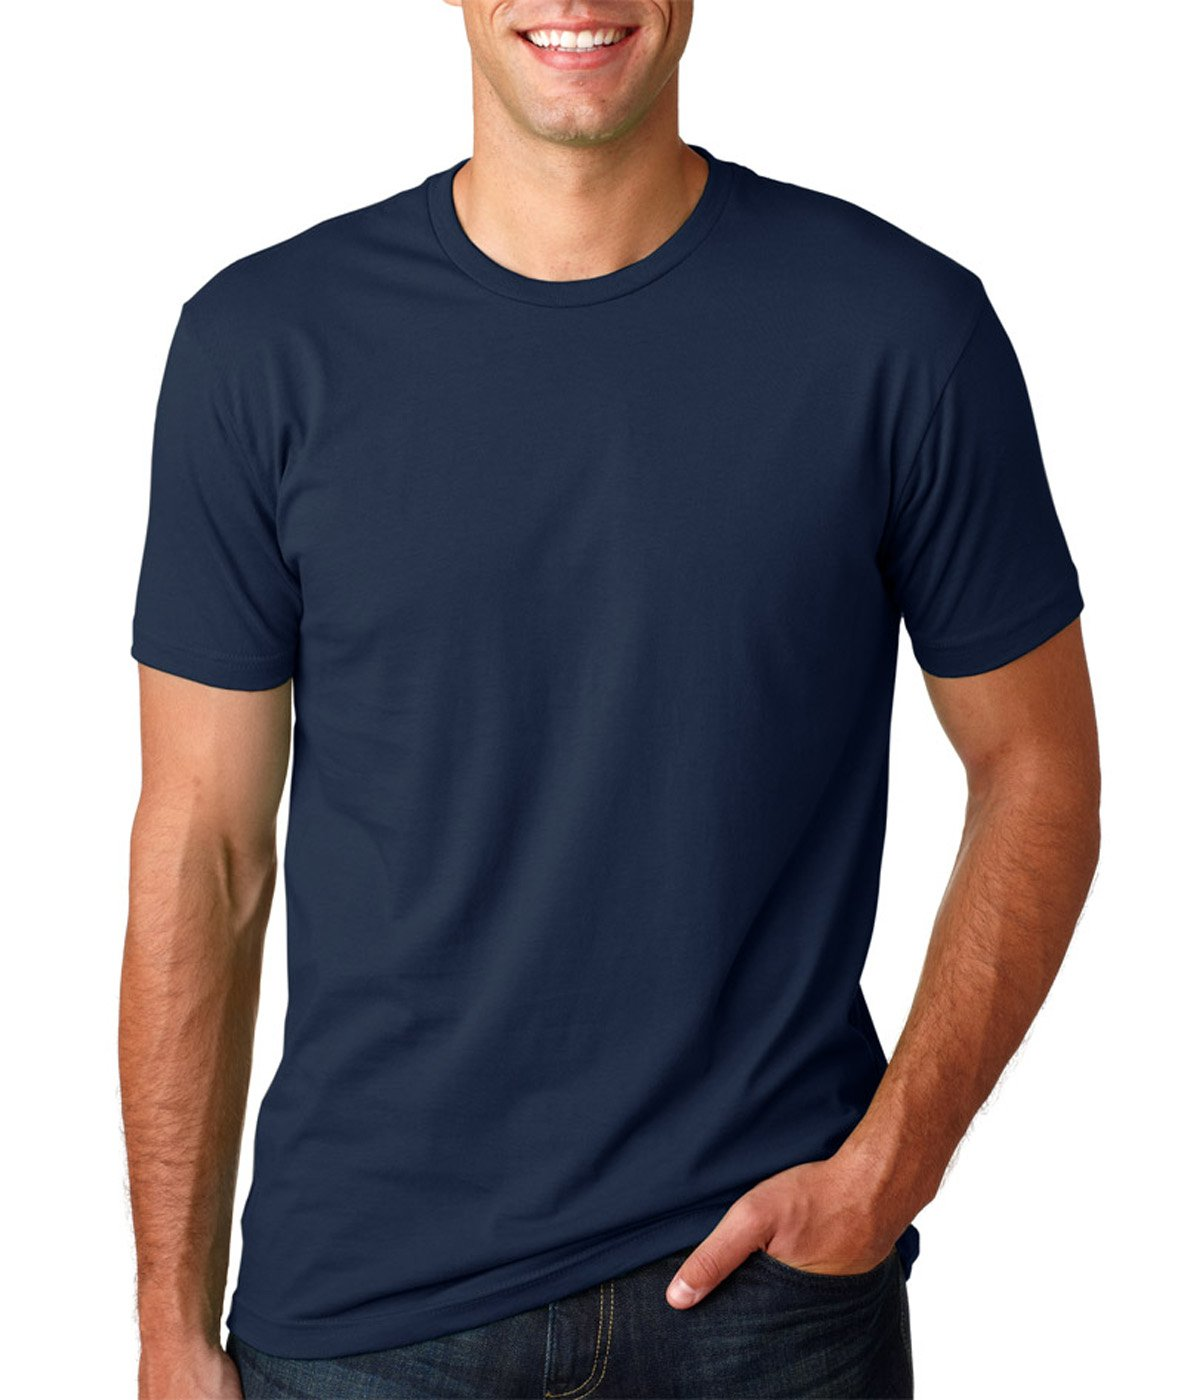 Next Level Mens Premium Fitted Short-Sleeve Crew T-Shirt - Midnight Navy + Black (2 Pack) - Small by Next Level